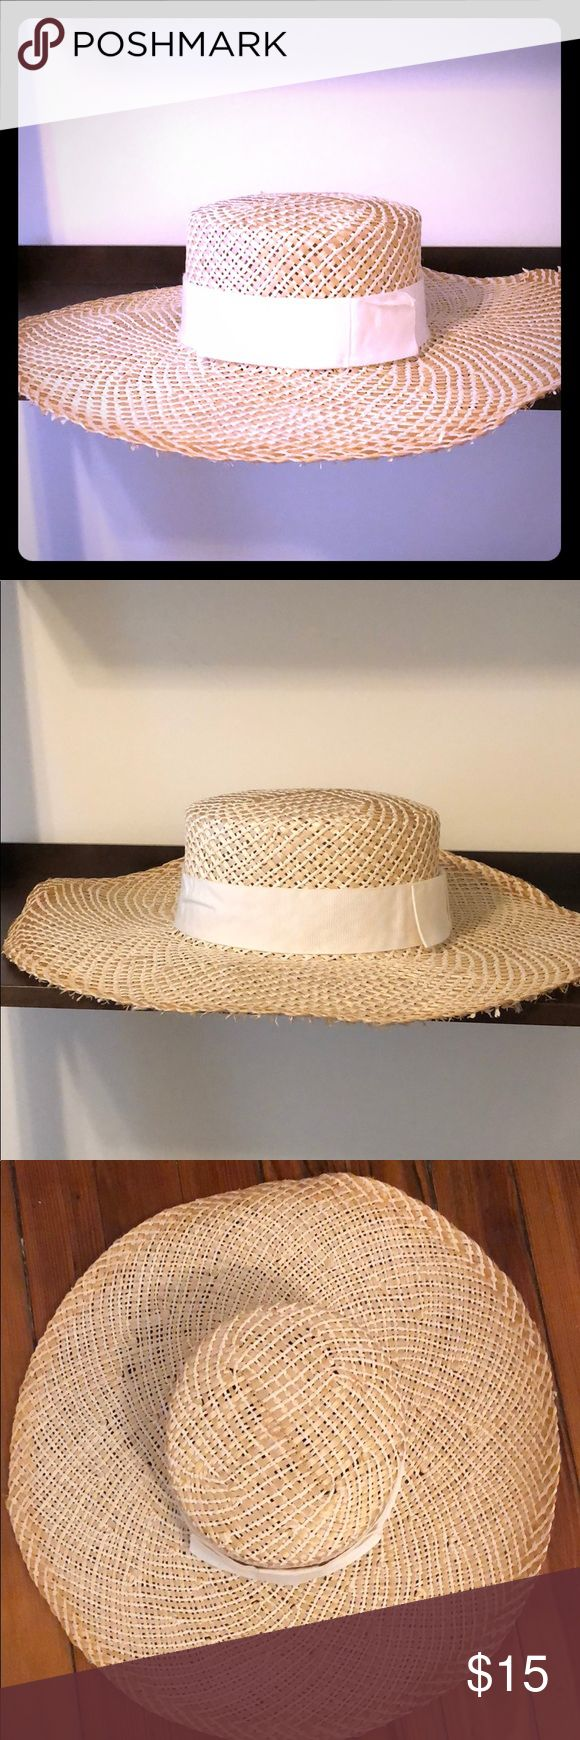 Vintage Ladies Sun Hat, never worn, made in Italy Beautiful ladies sun hat made by Lord and Taylor.  Made in Italy.  White ribbon around brim with bow.  Perfect condition, never worn. Lord & Taylor Accessories Hats